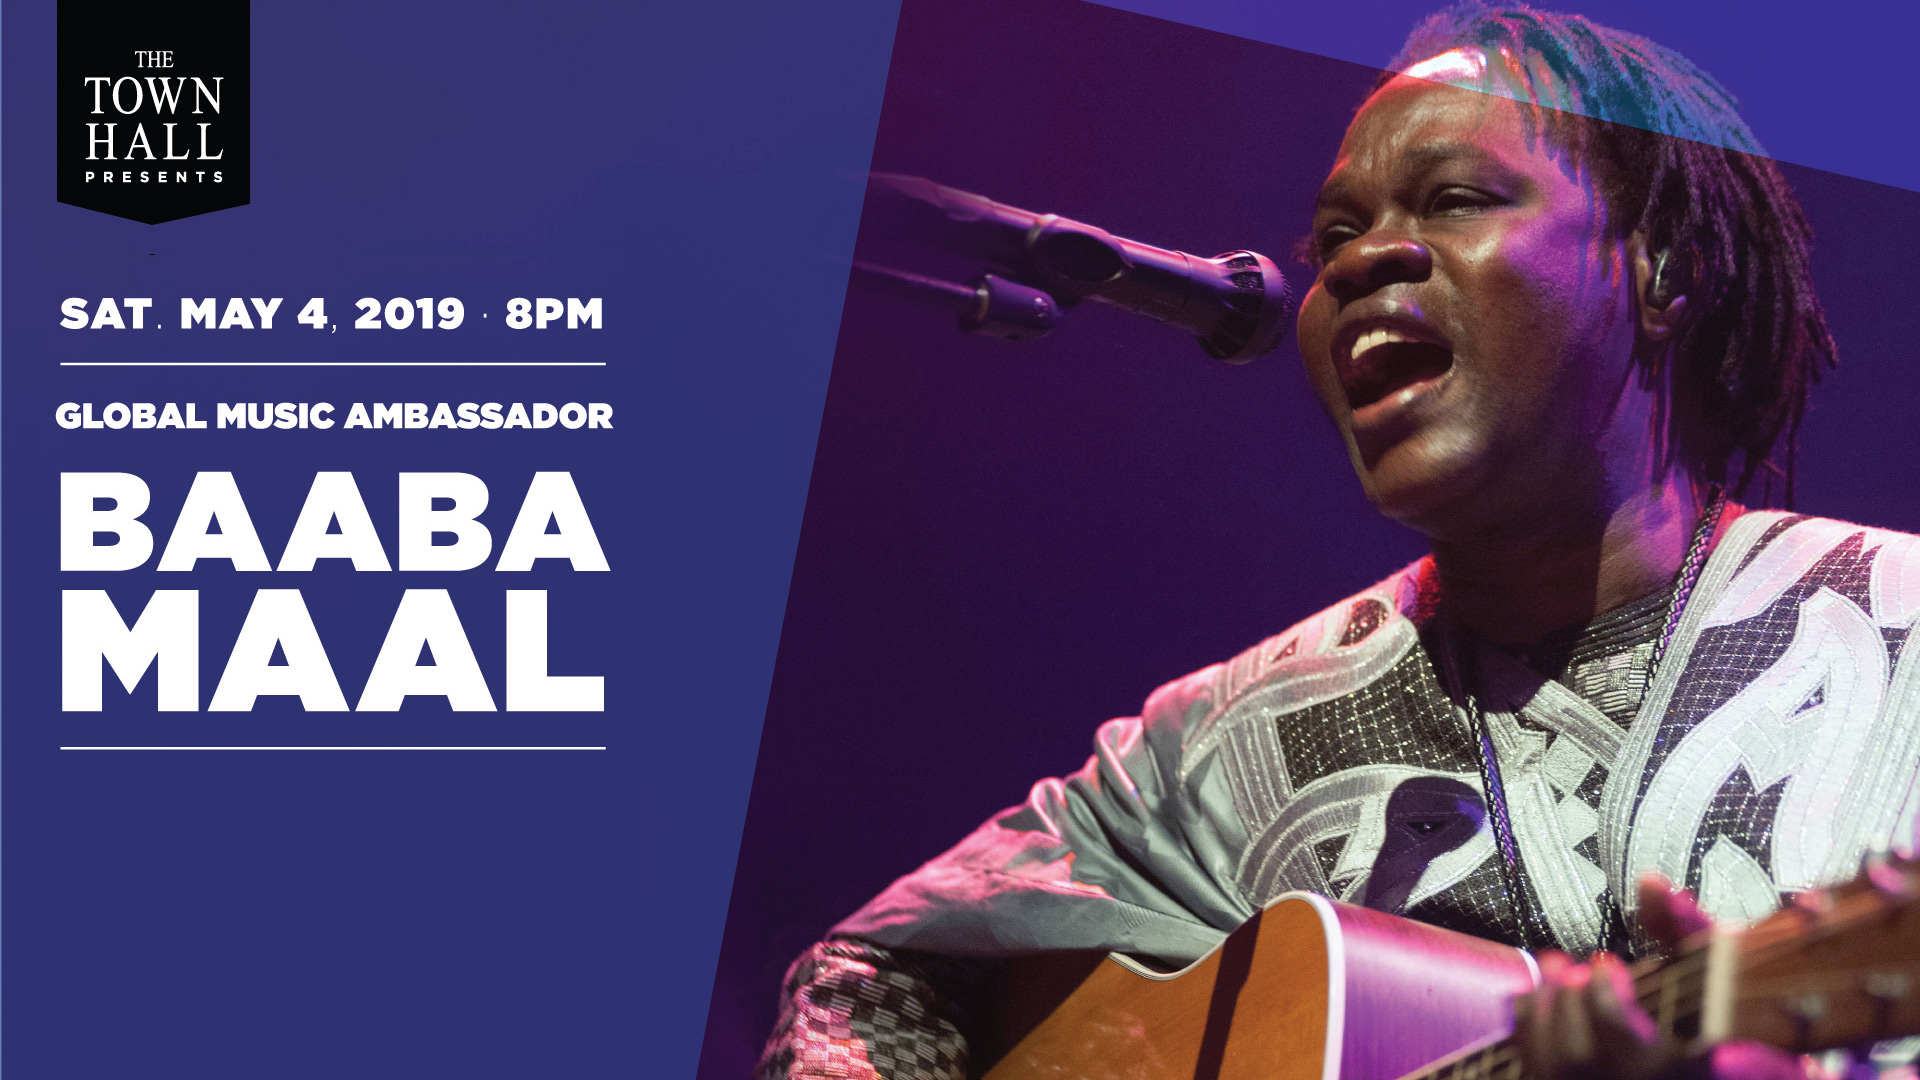 Baaba performing at The Town Hall in NYC